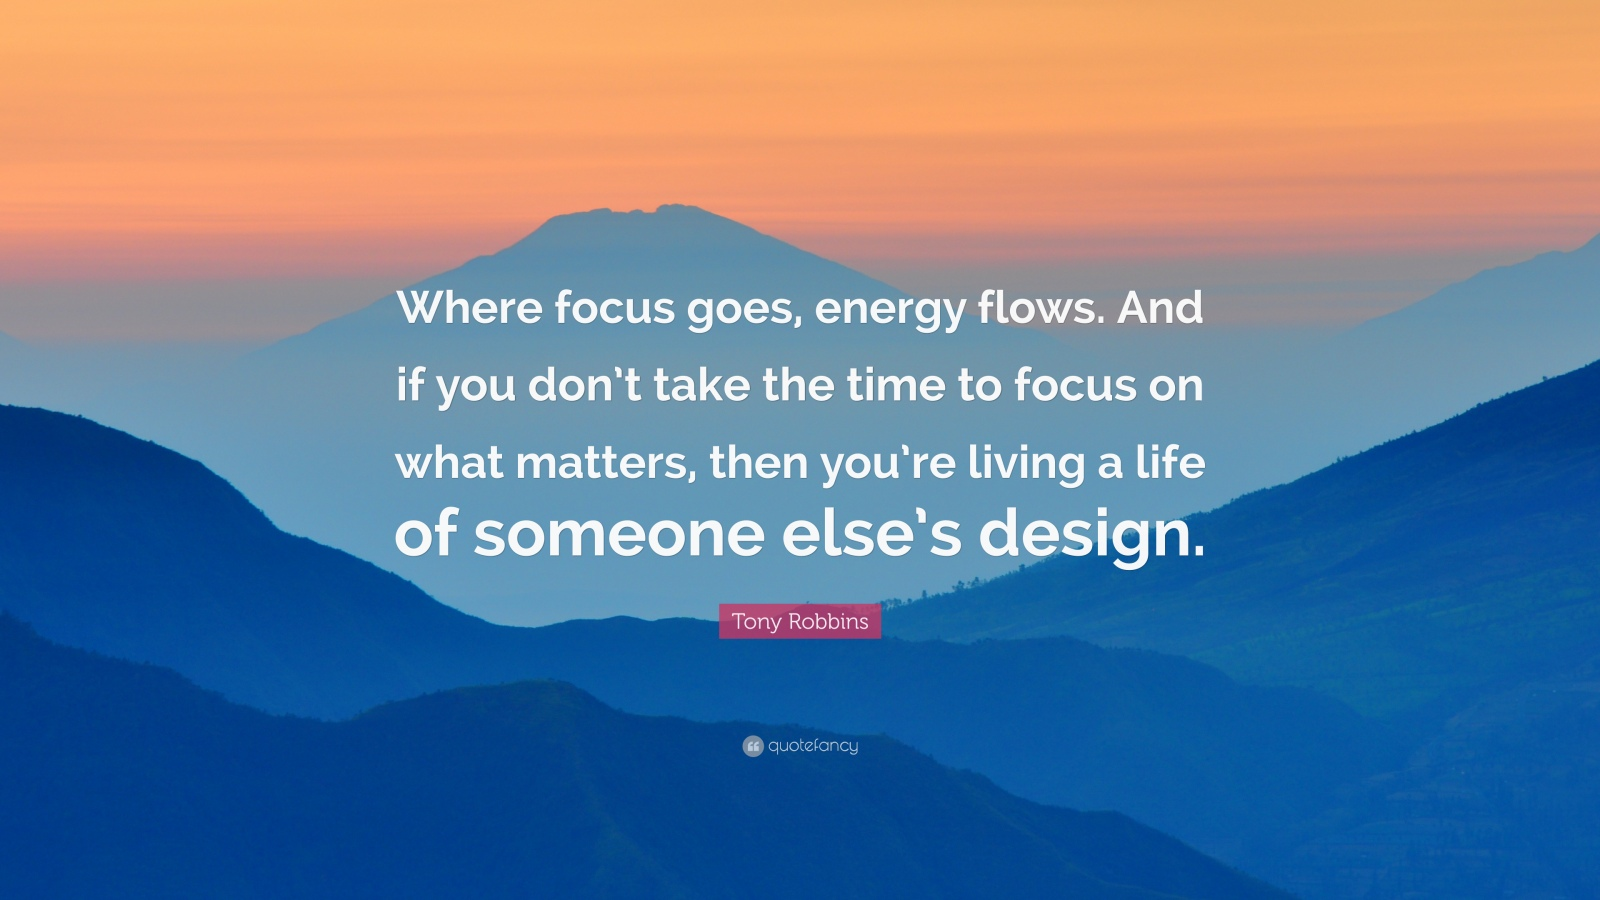 Terra Life Flows With Purpose